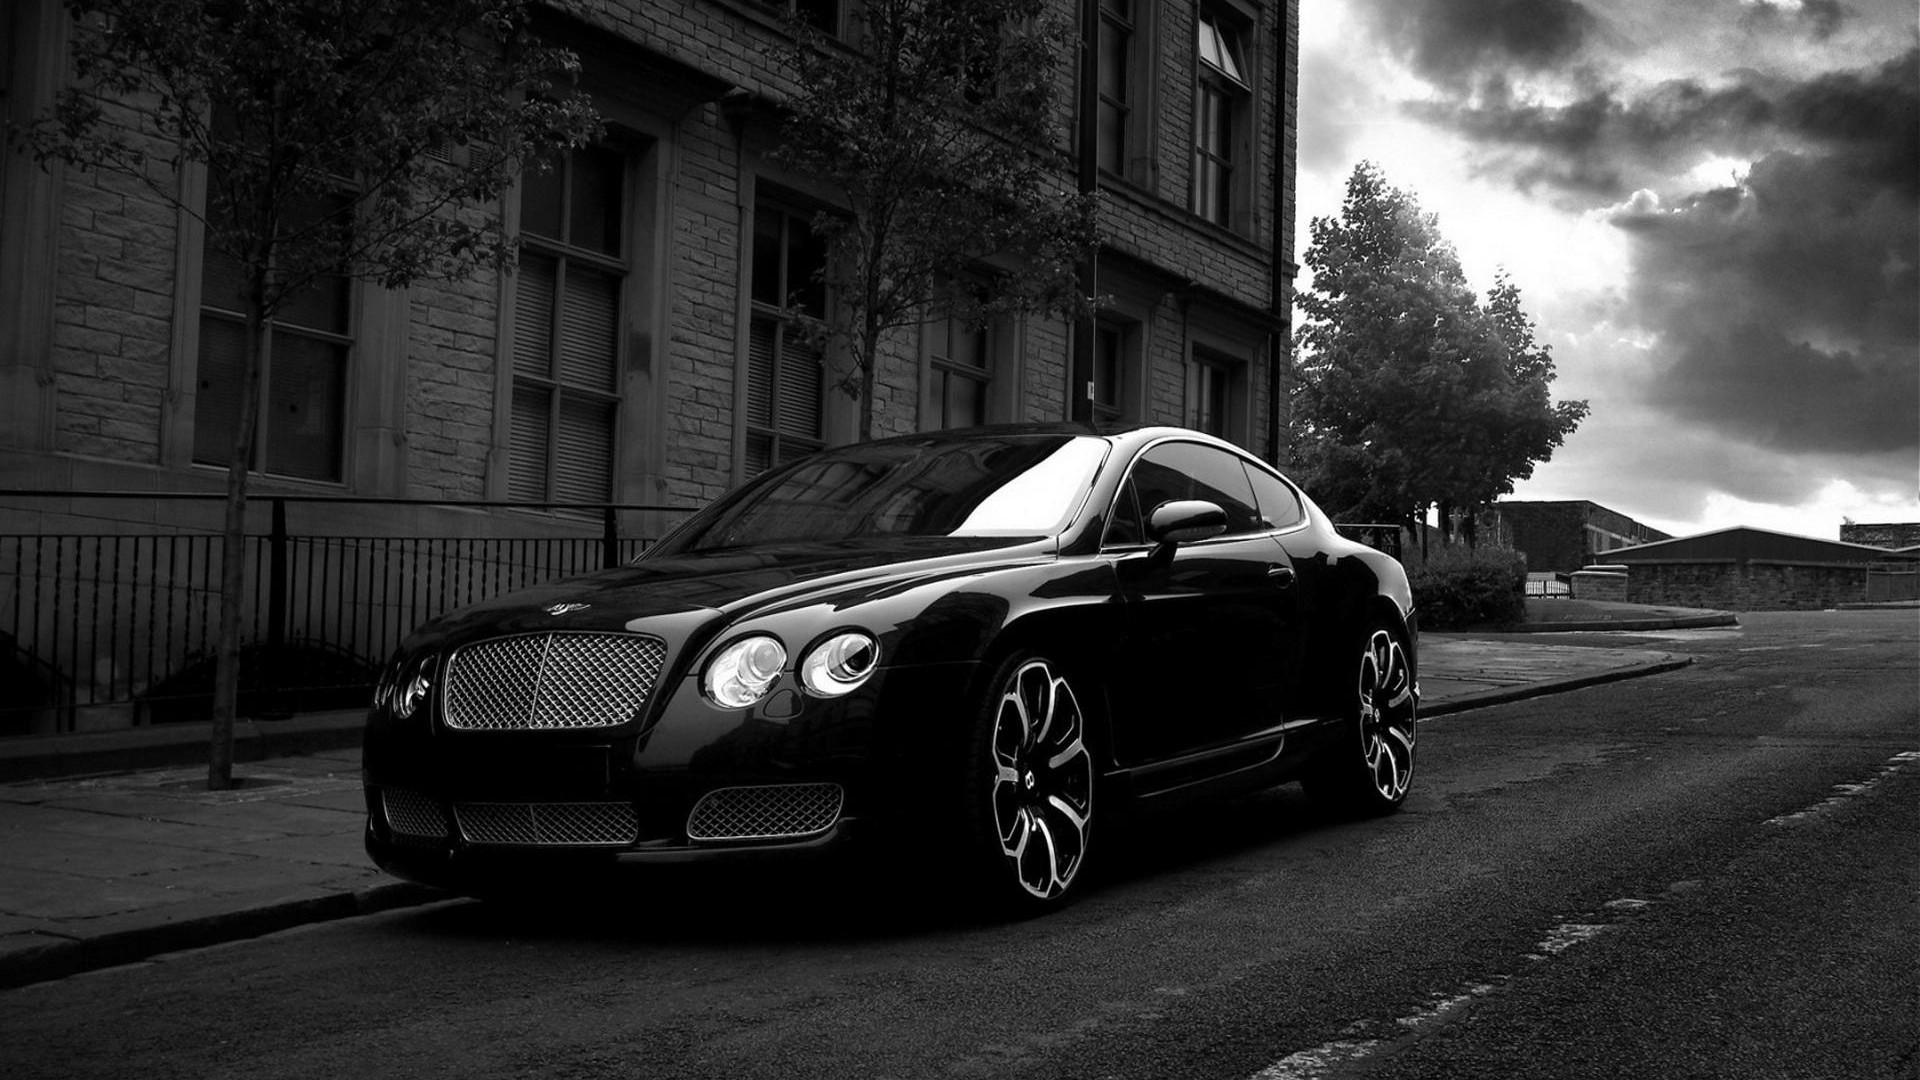 Bentley Wallpaper Full HD